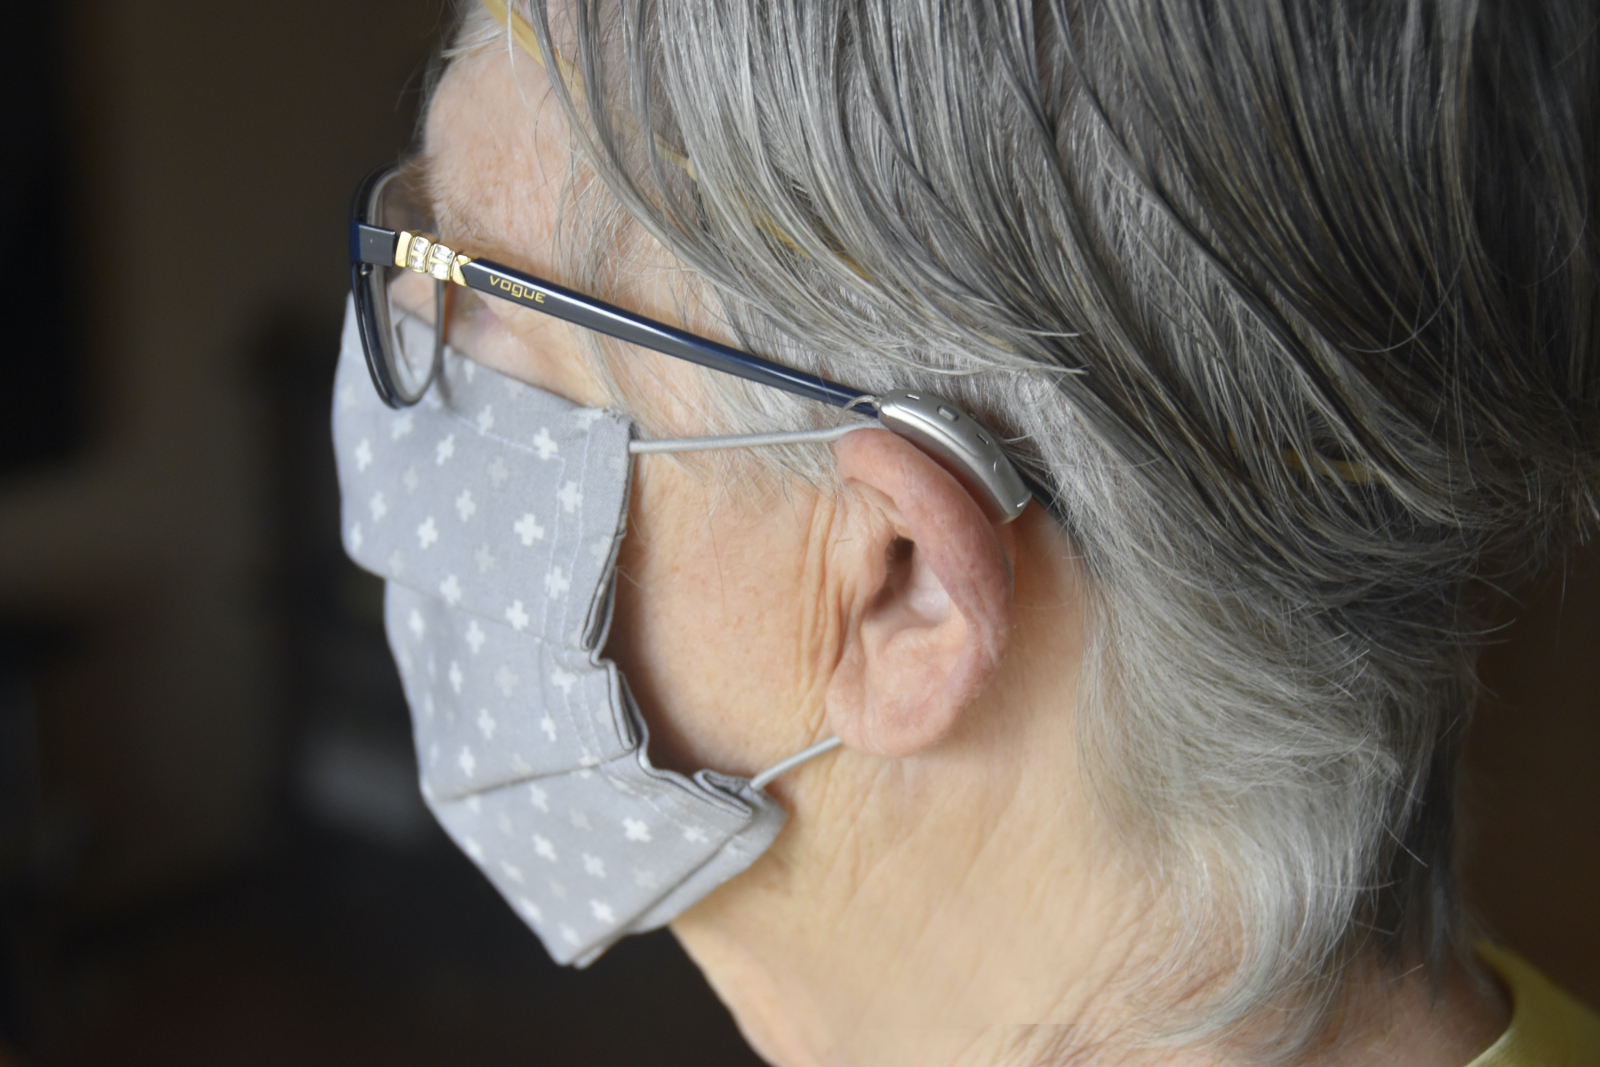 Woman wearing a face mask, hearing aids and eyeglasses.